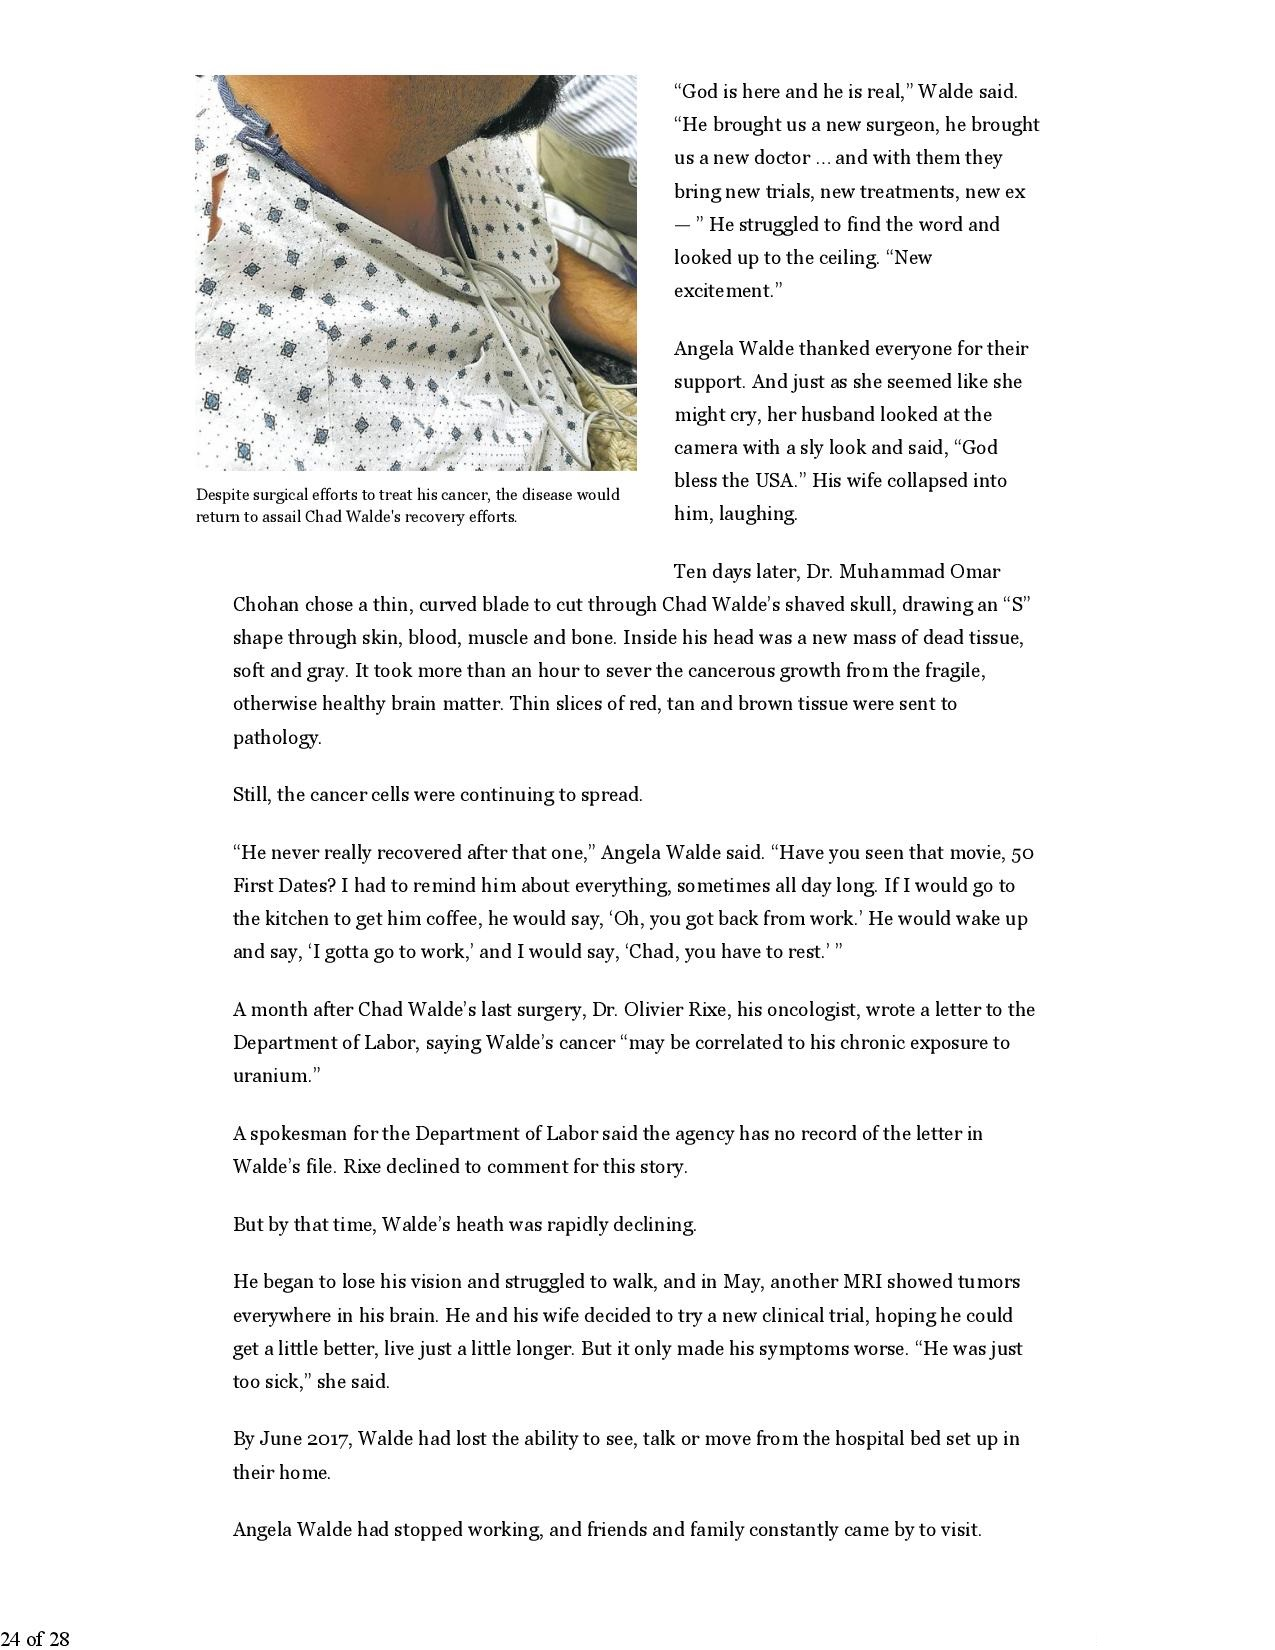 The life and death of Chad Walde - Local News-page-024